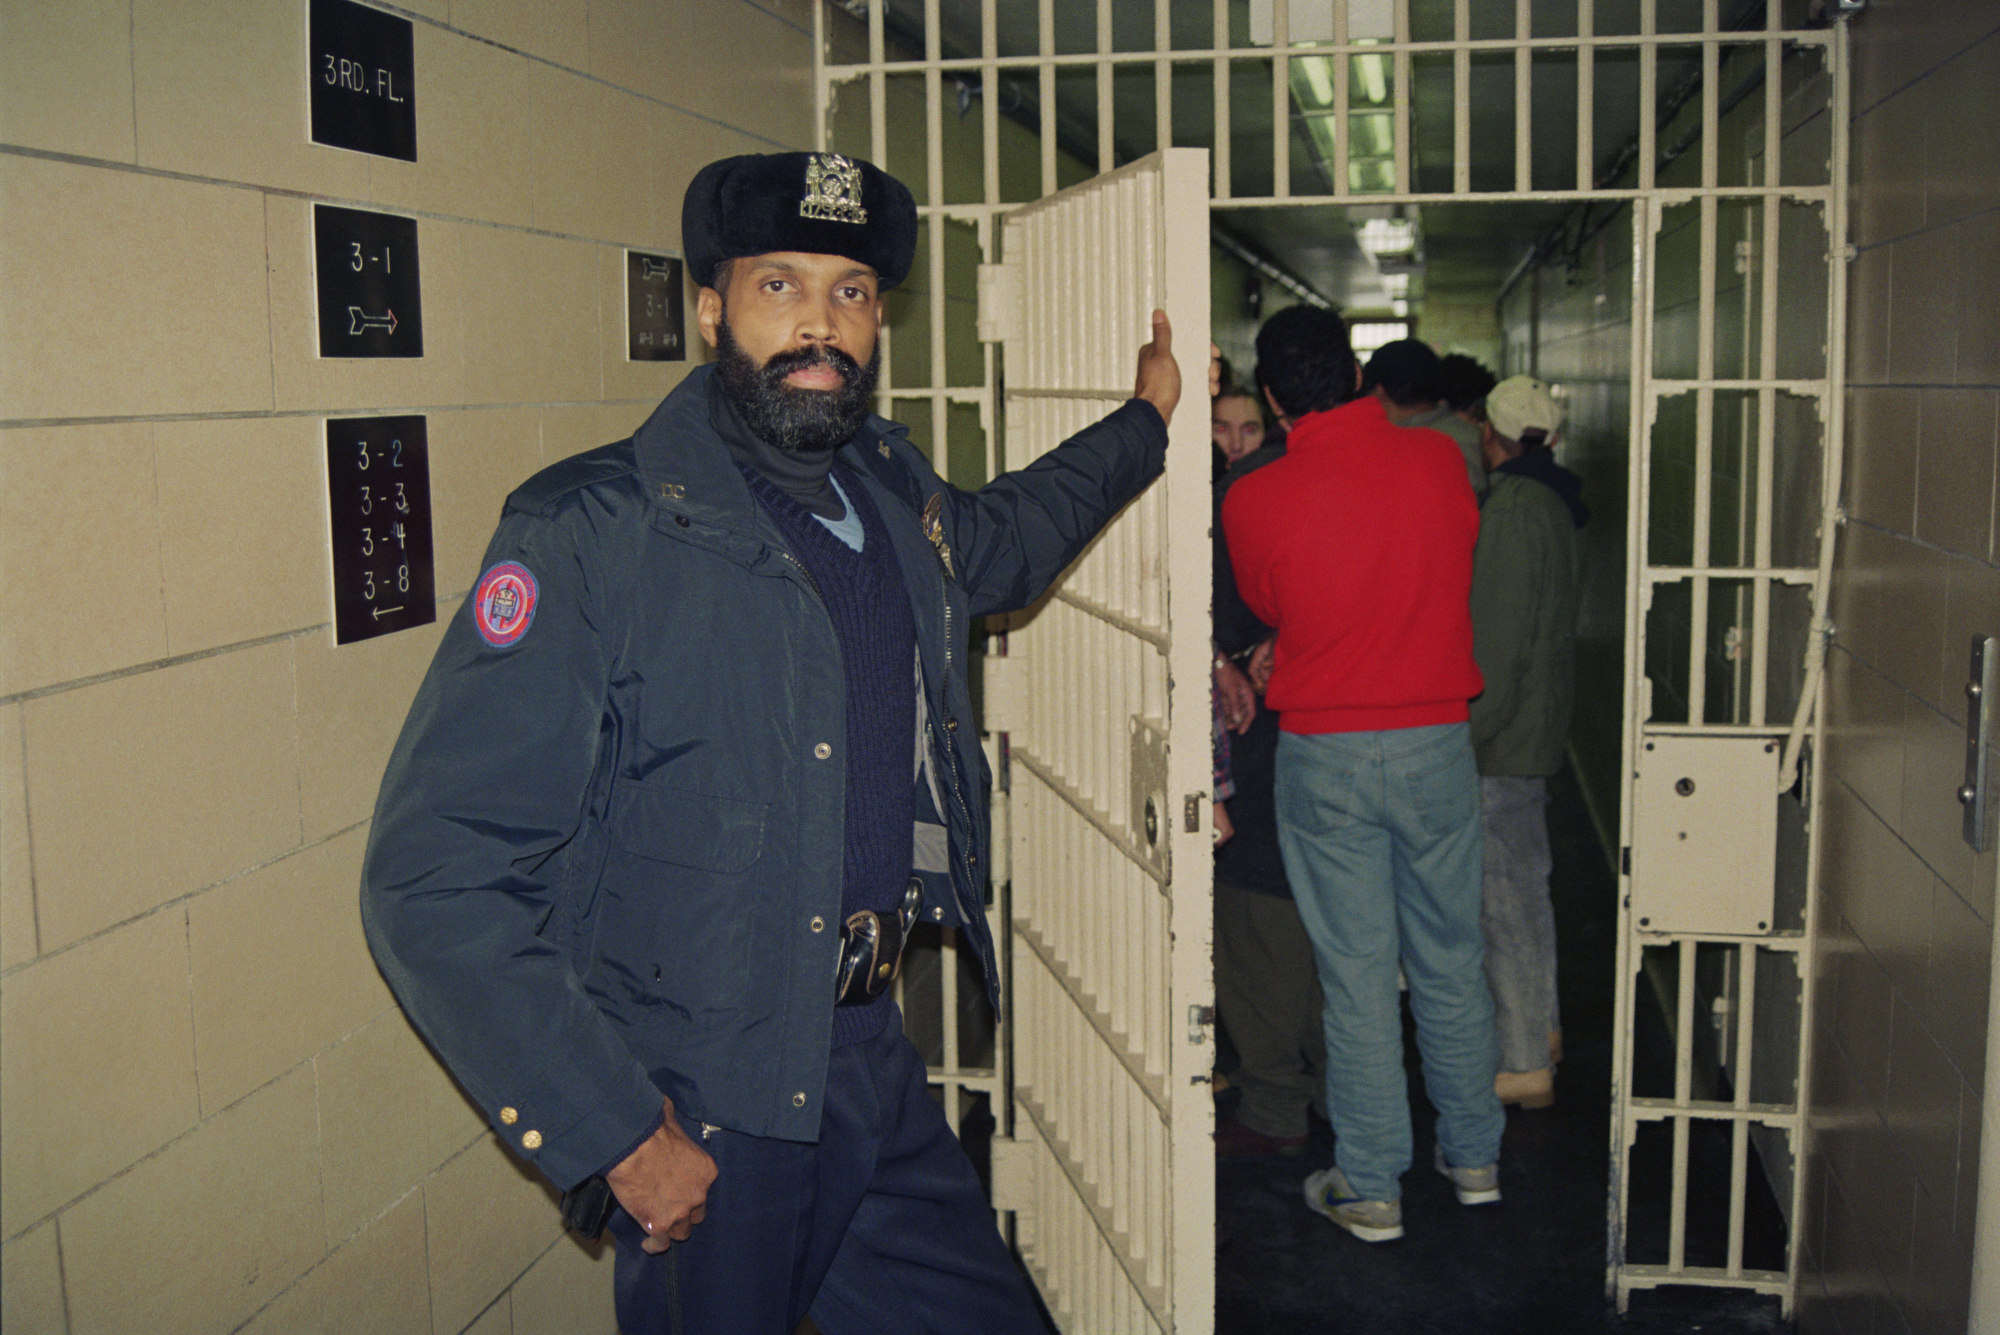 These photographs show life inside Rikers Island prison - The